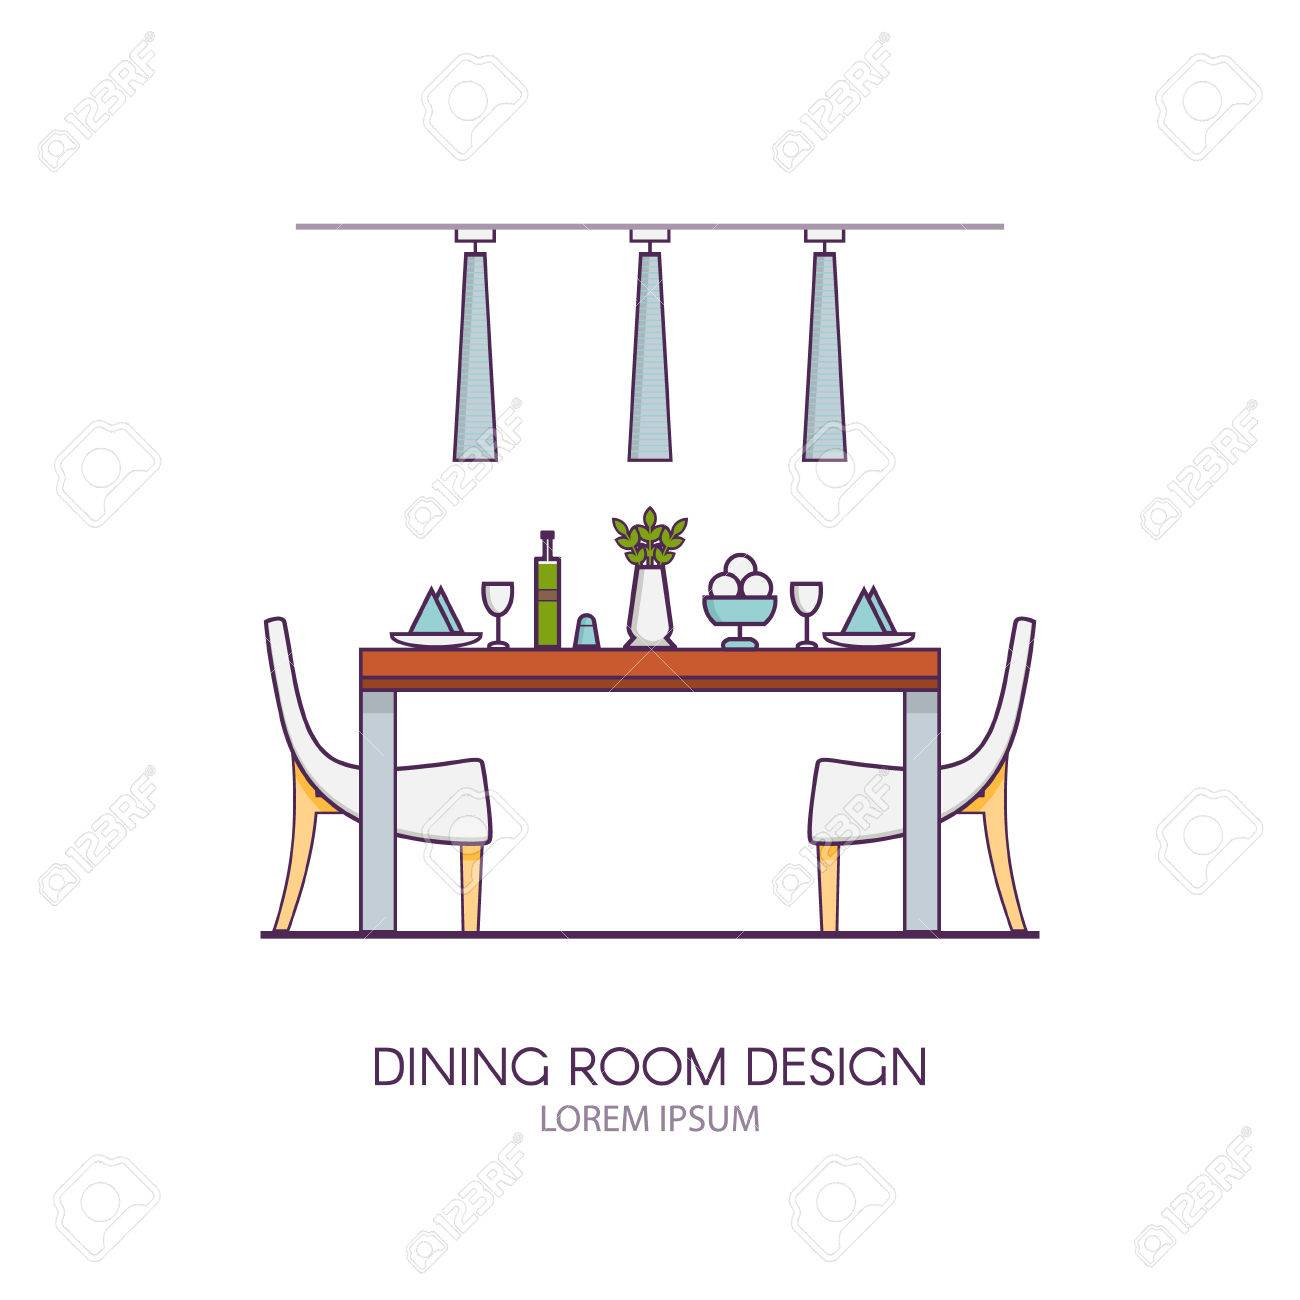 Modern Dining Room Design Made In Style Linear Vector Concept Of Interior Apartment With